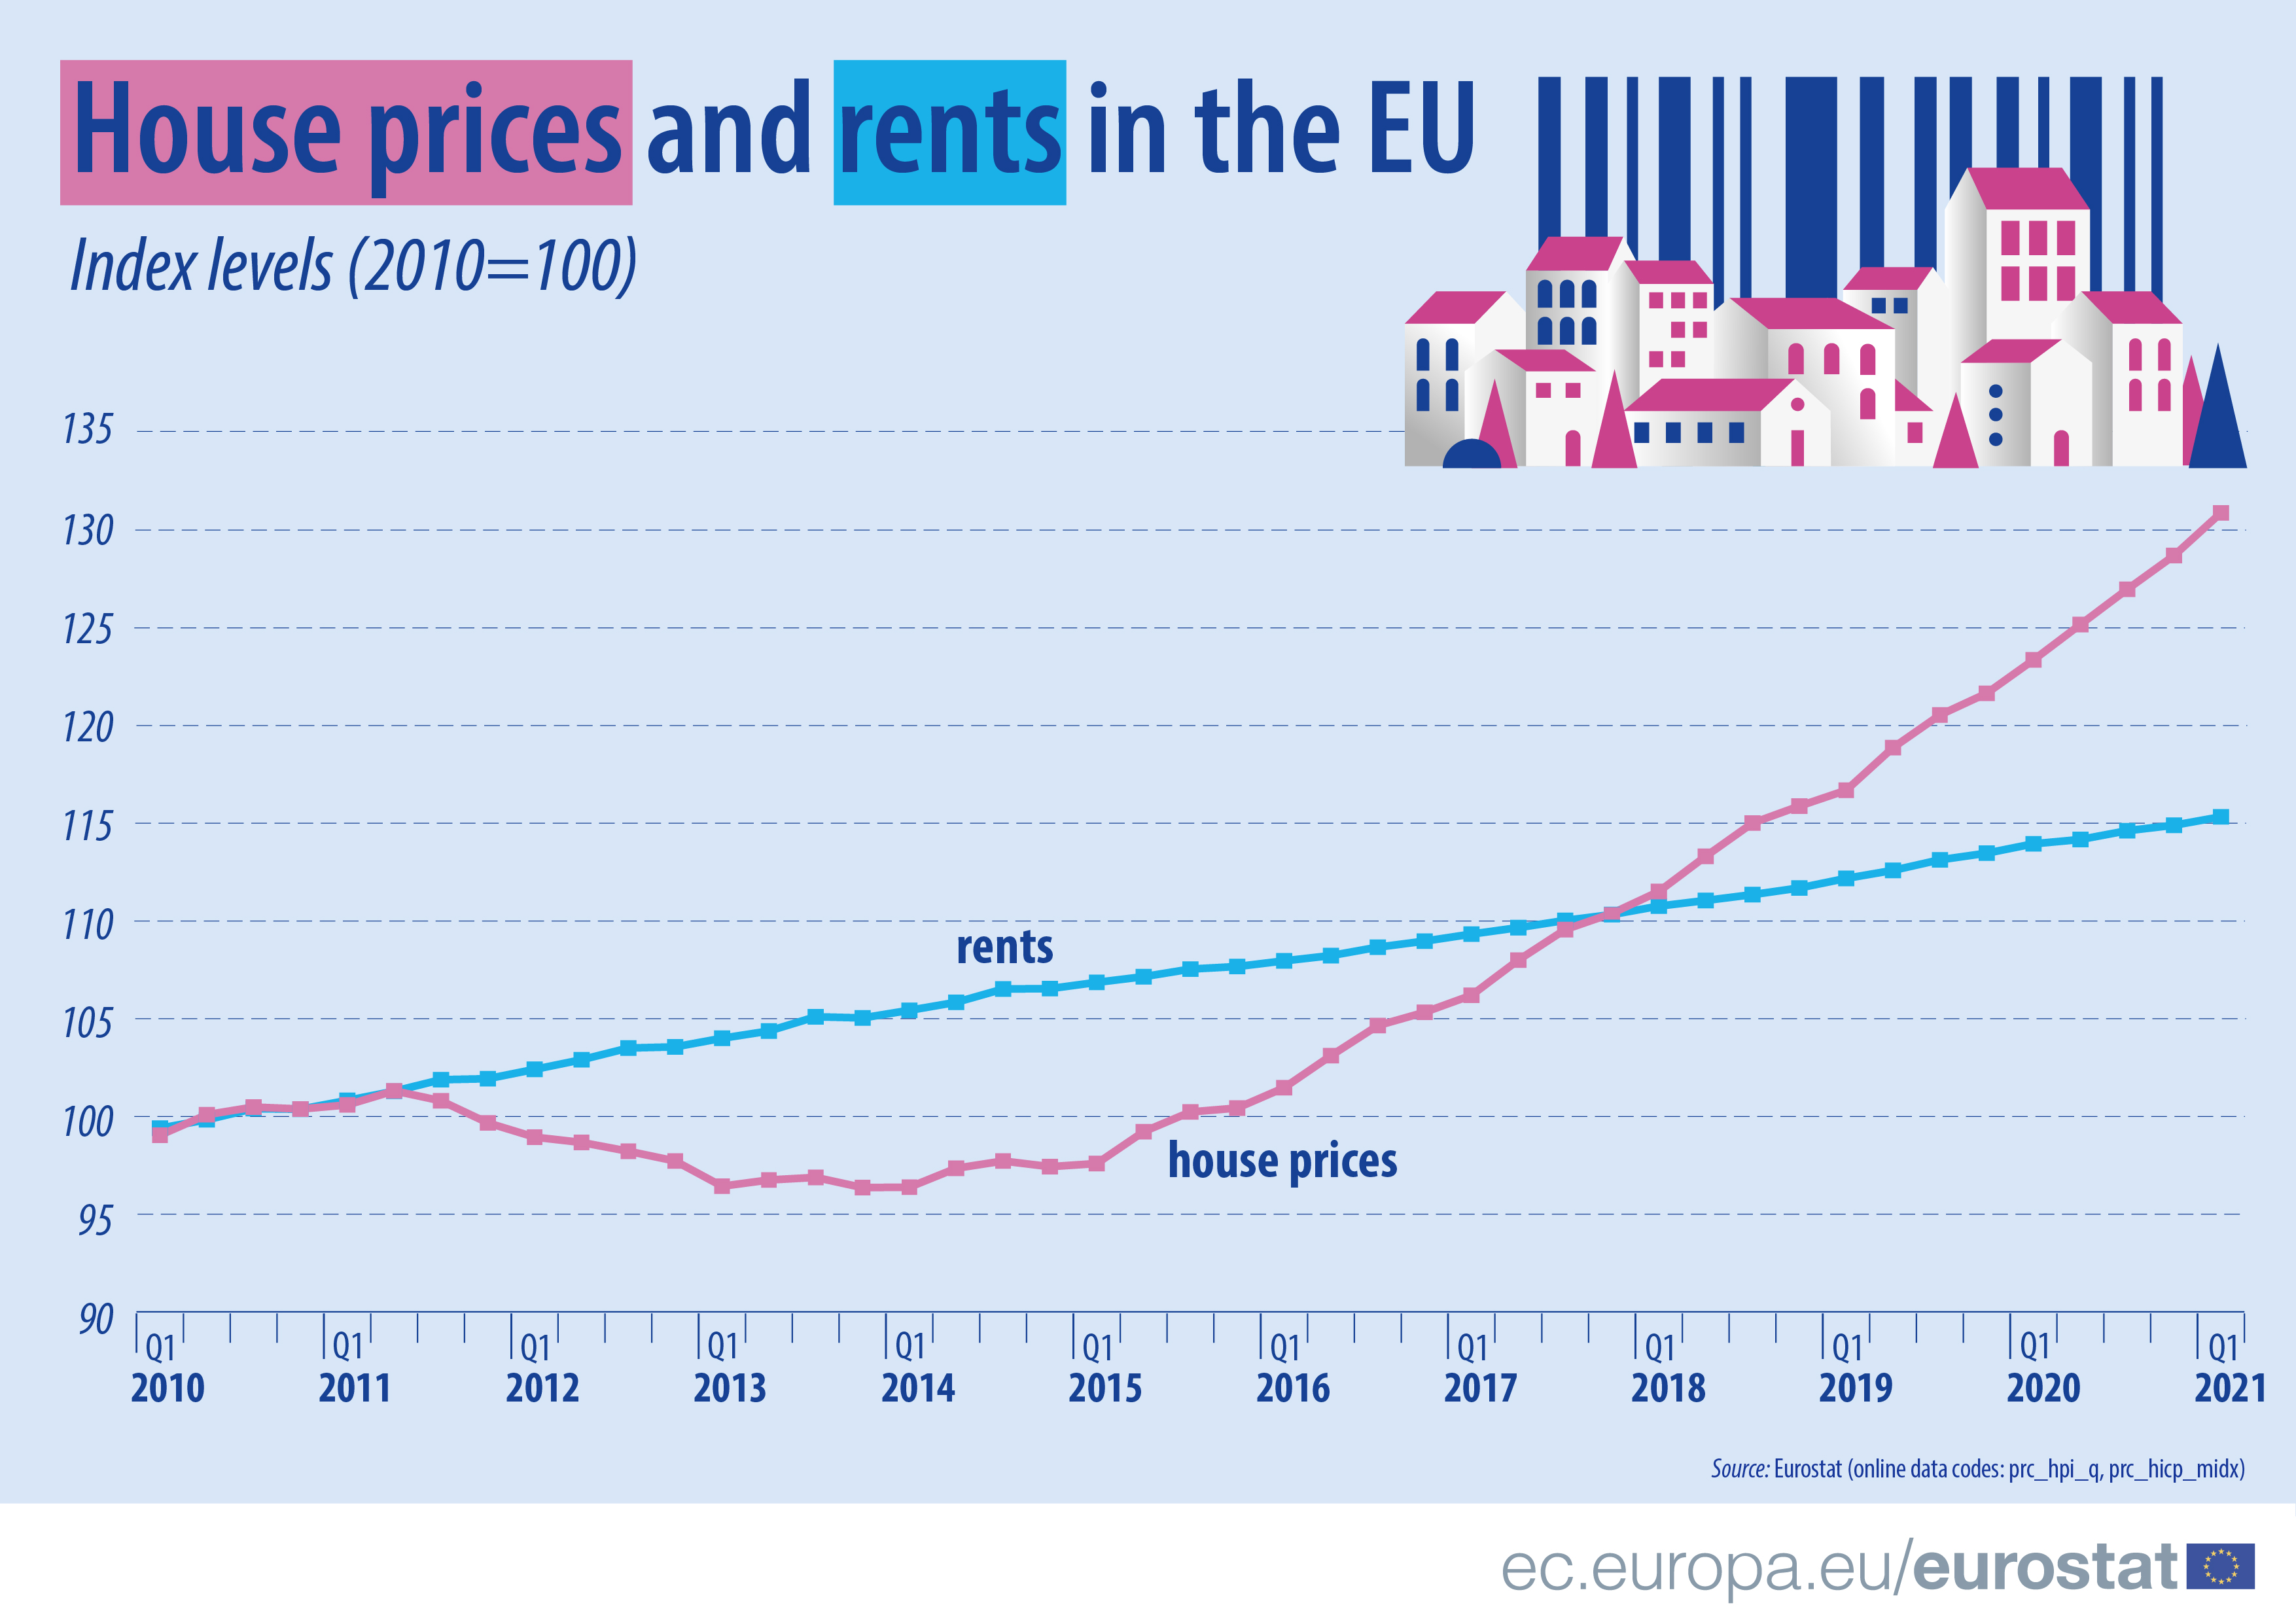 Line chart with 2 lines: development of house prices and rents in the EU from 1st quarter 2010 to first quarter 2021, index value is 100 in Q1 2010